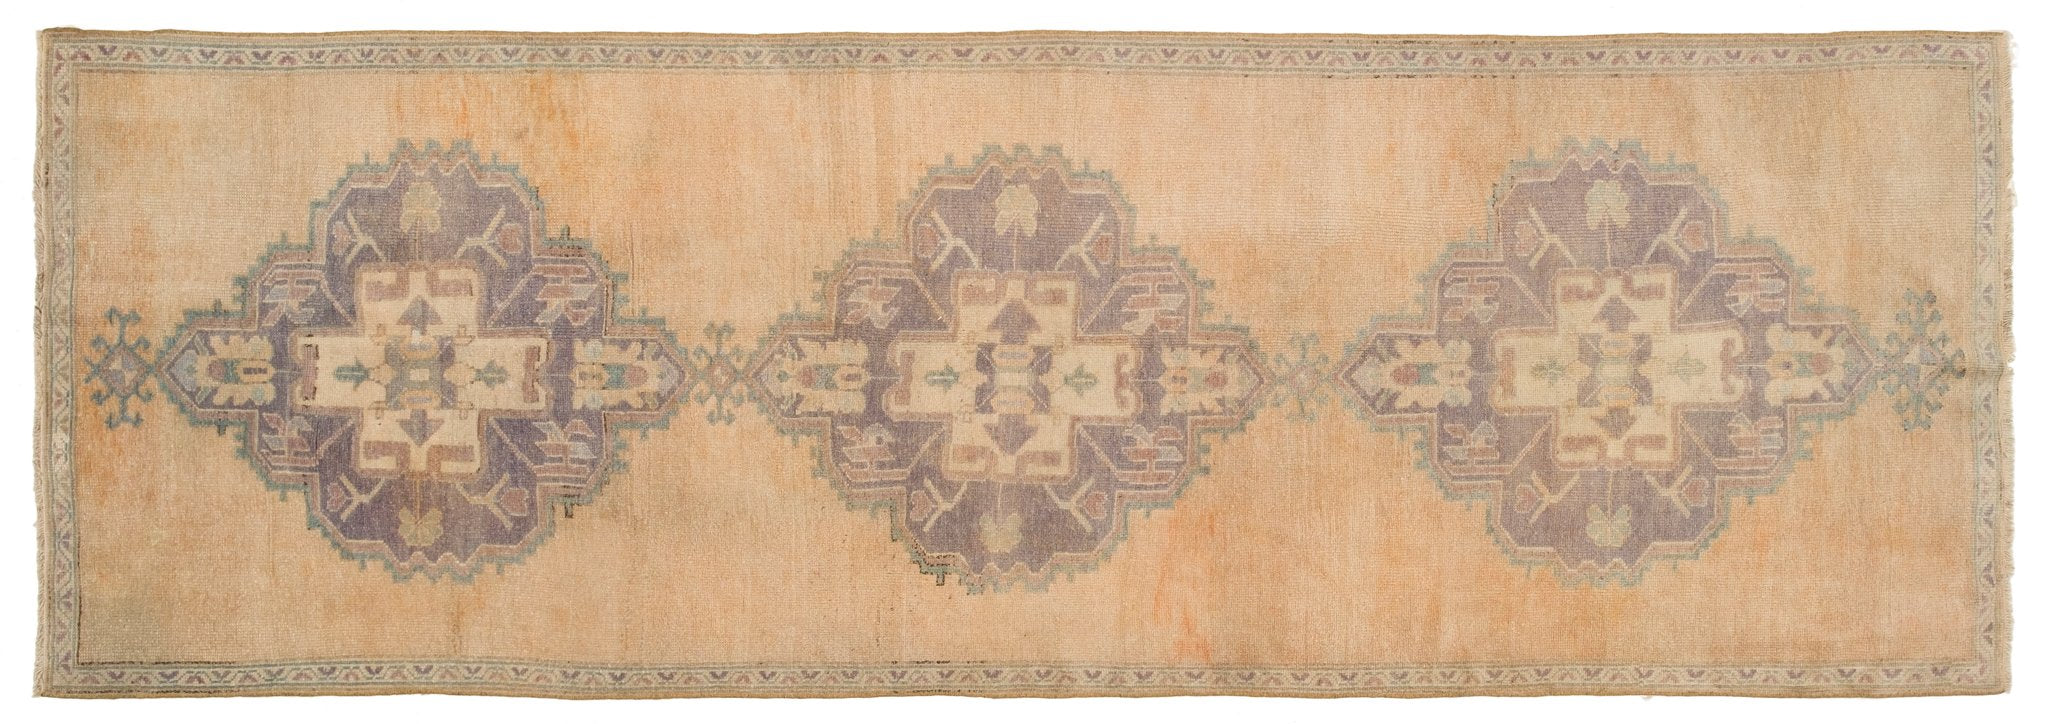 Vintage Turkish Runner Rug Auro